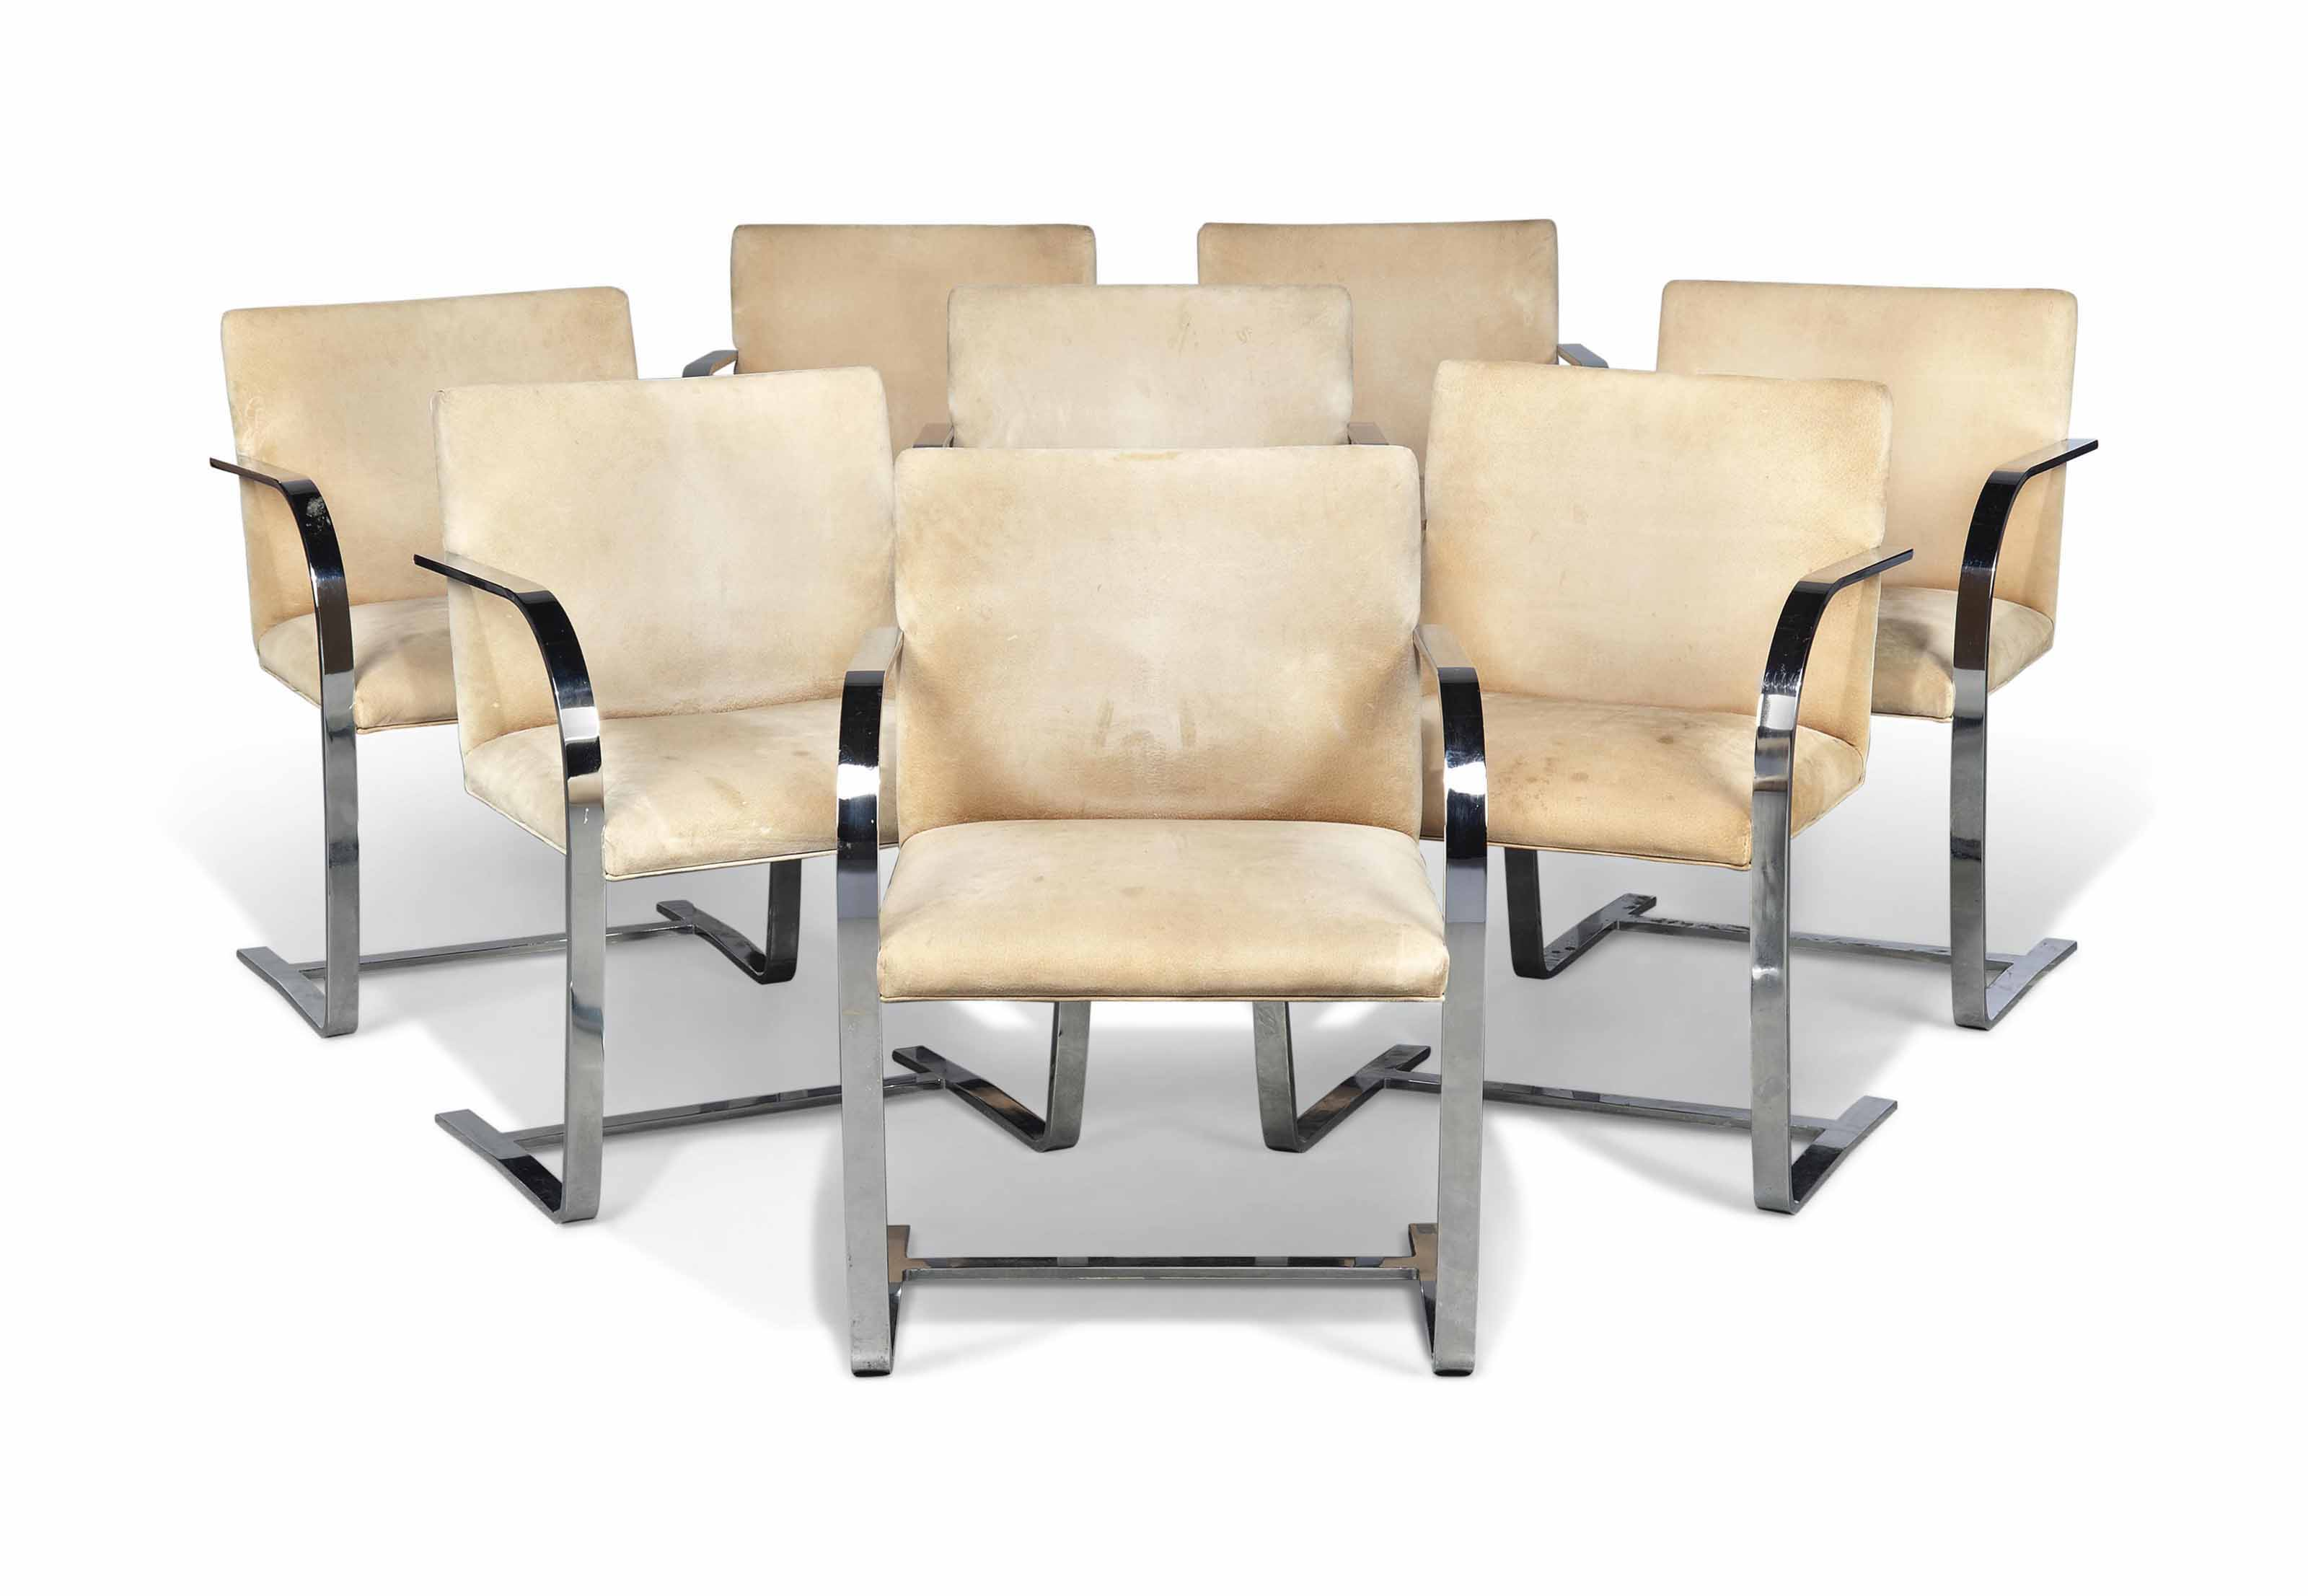 A SET OF EIGHT LUDWIG MIES VAN DER ROHE (1886-1969) 'BRNO' CHAIRS MADE BY KNOLL INTERNATIONAL